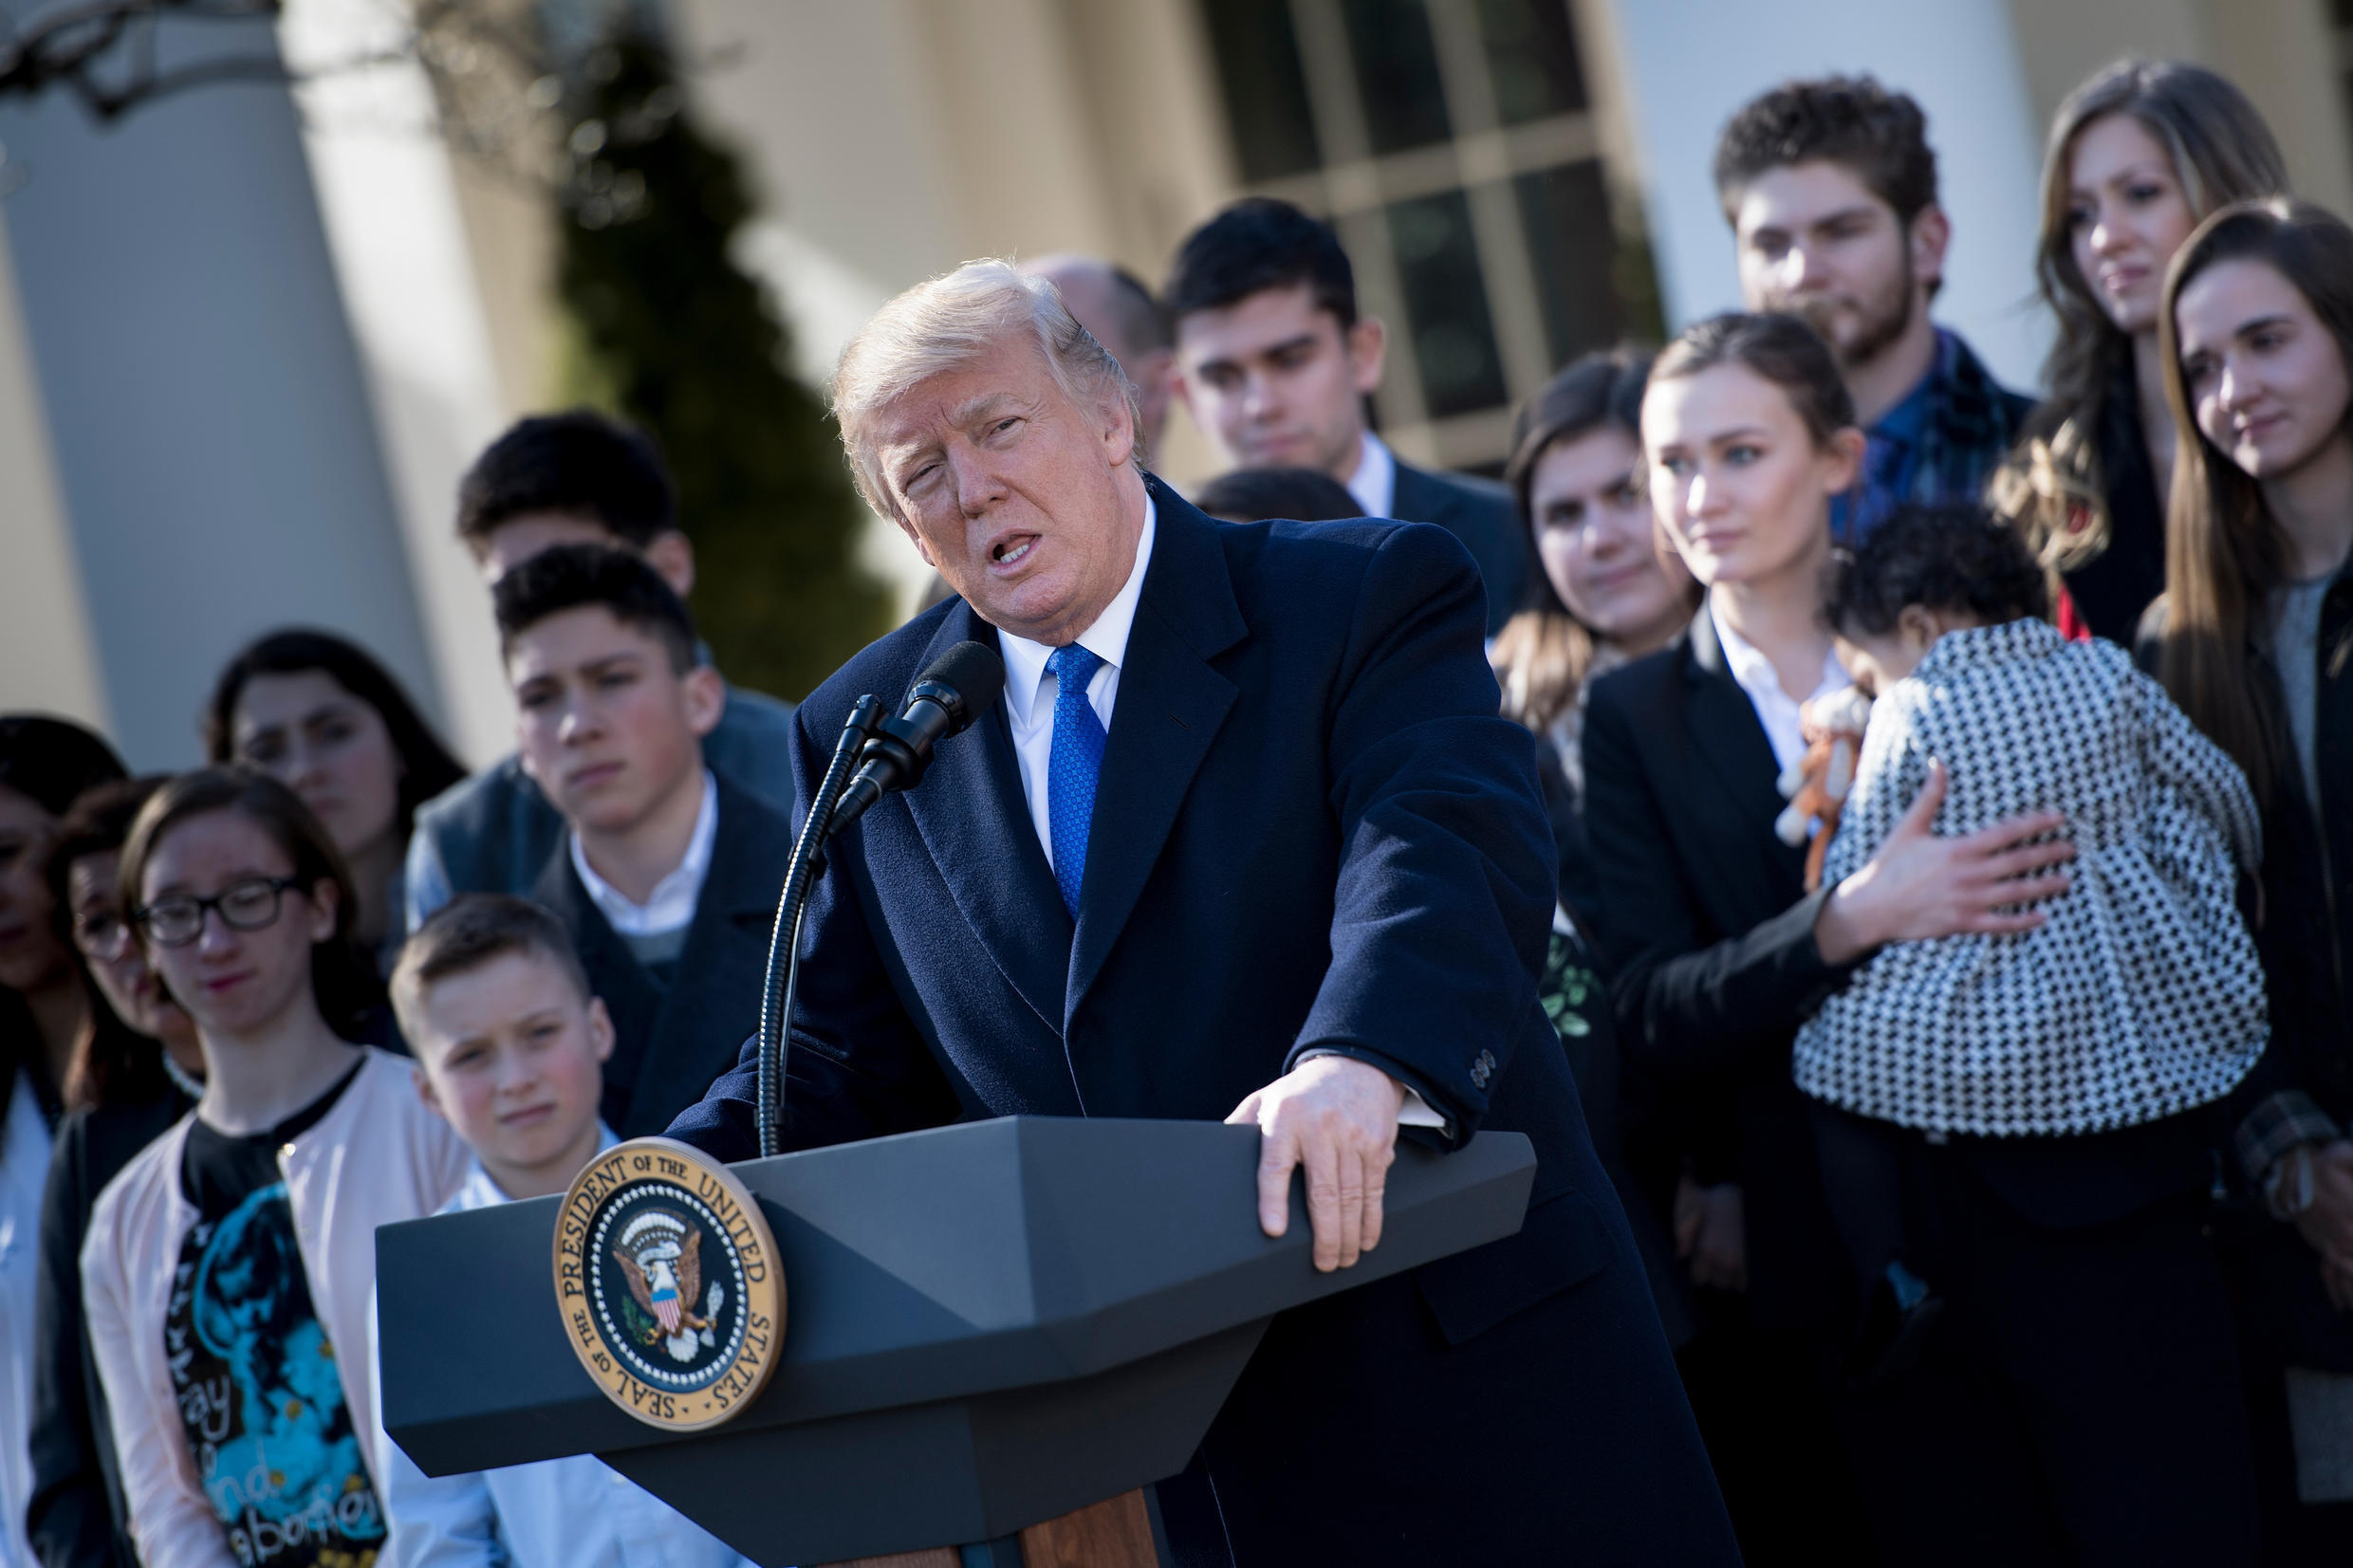 US President Donald Trump delivers a speech via video from the White House to the March for Life on January 19, 2018.